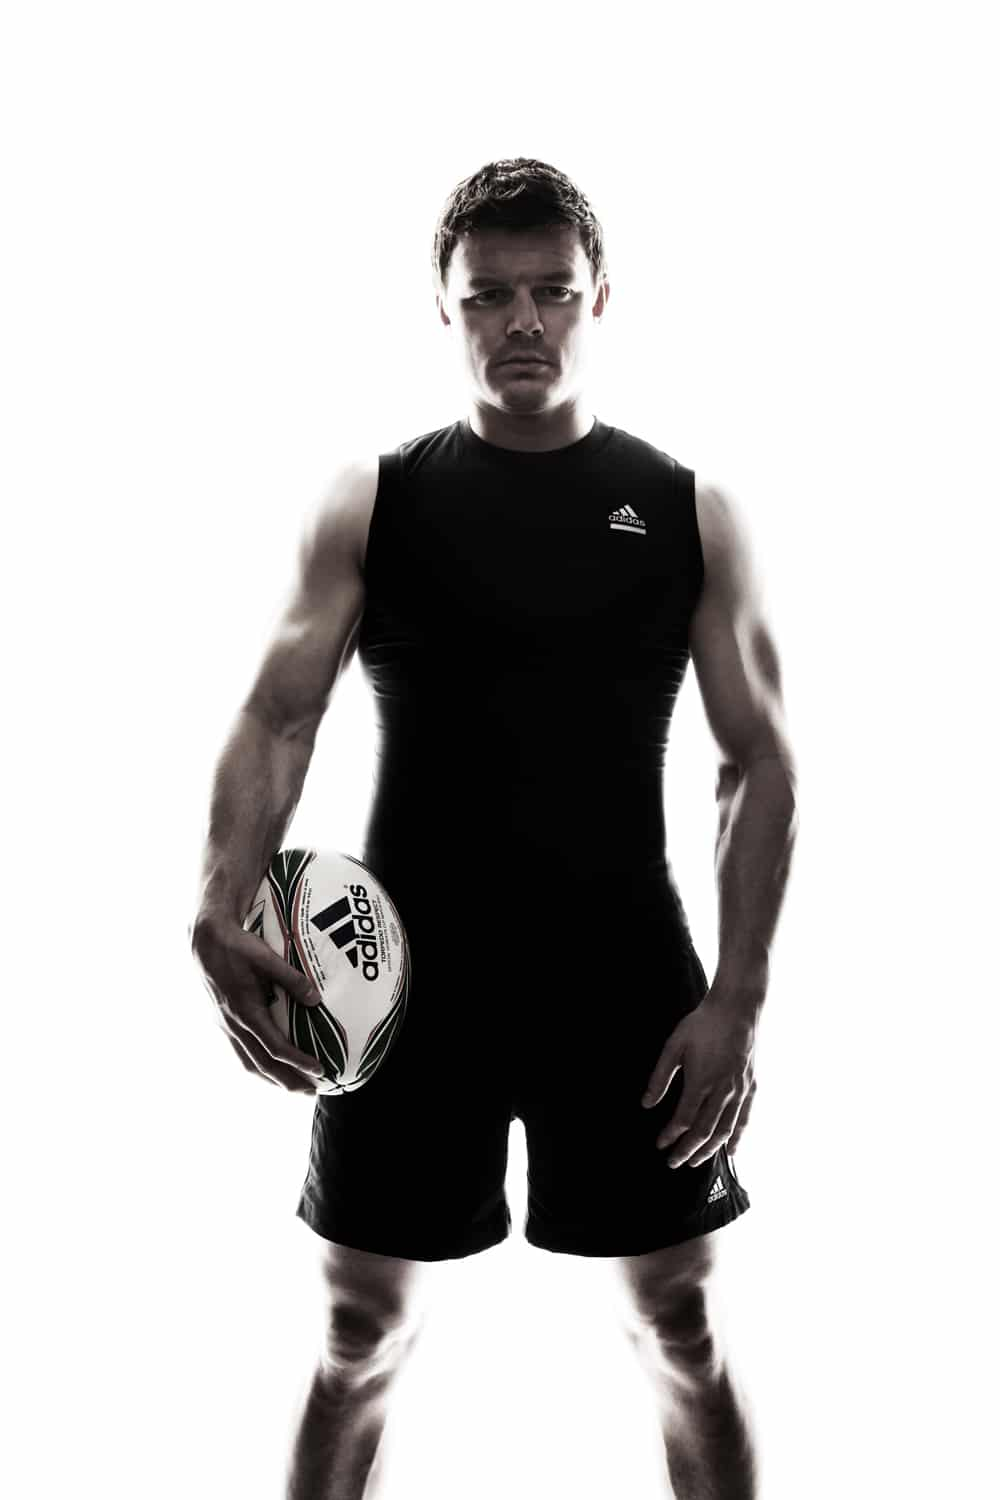 BRIAN O DRISCOLL PHOTOGRAPHED BY BARRY MCCALL FOR PHO20GRAPHY